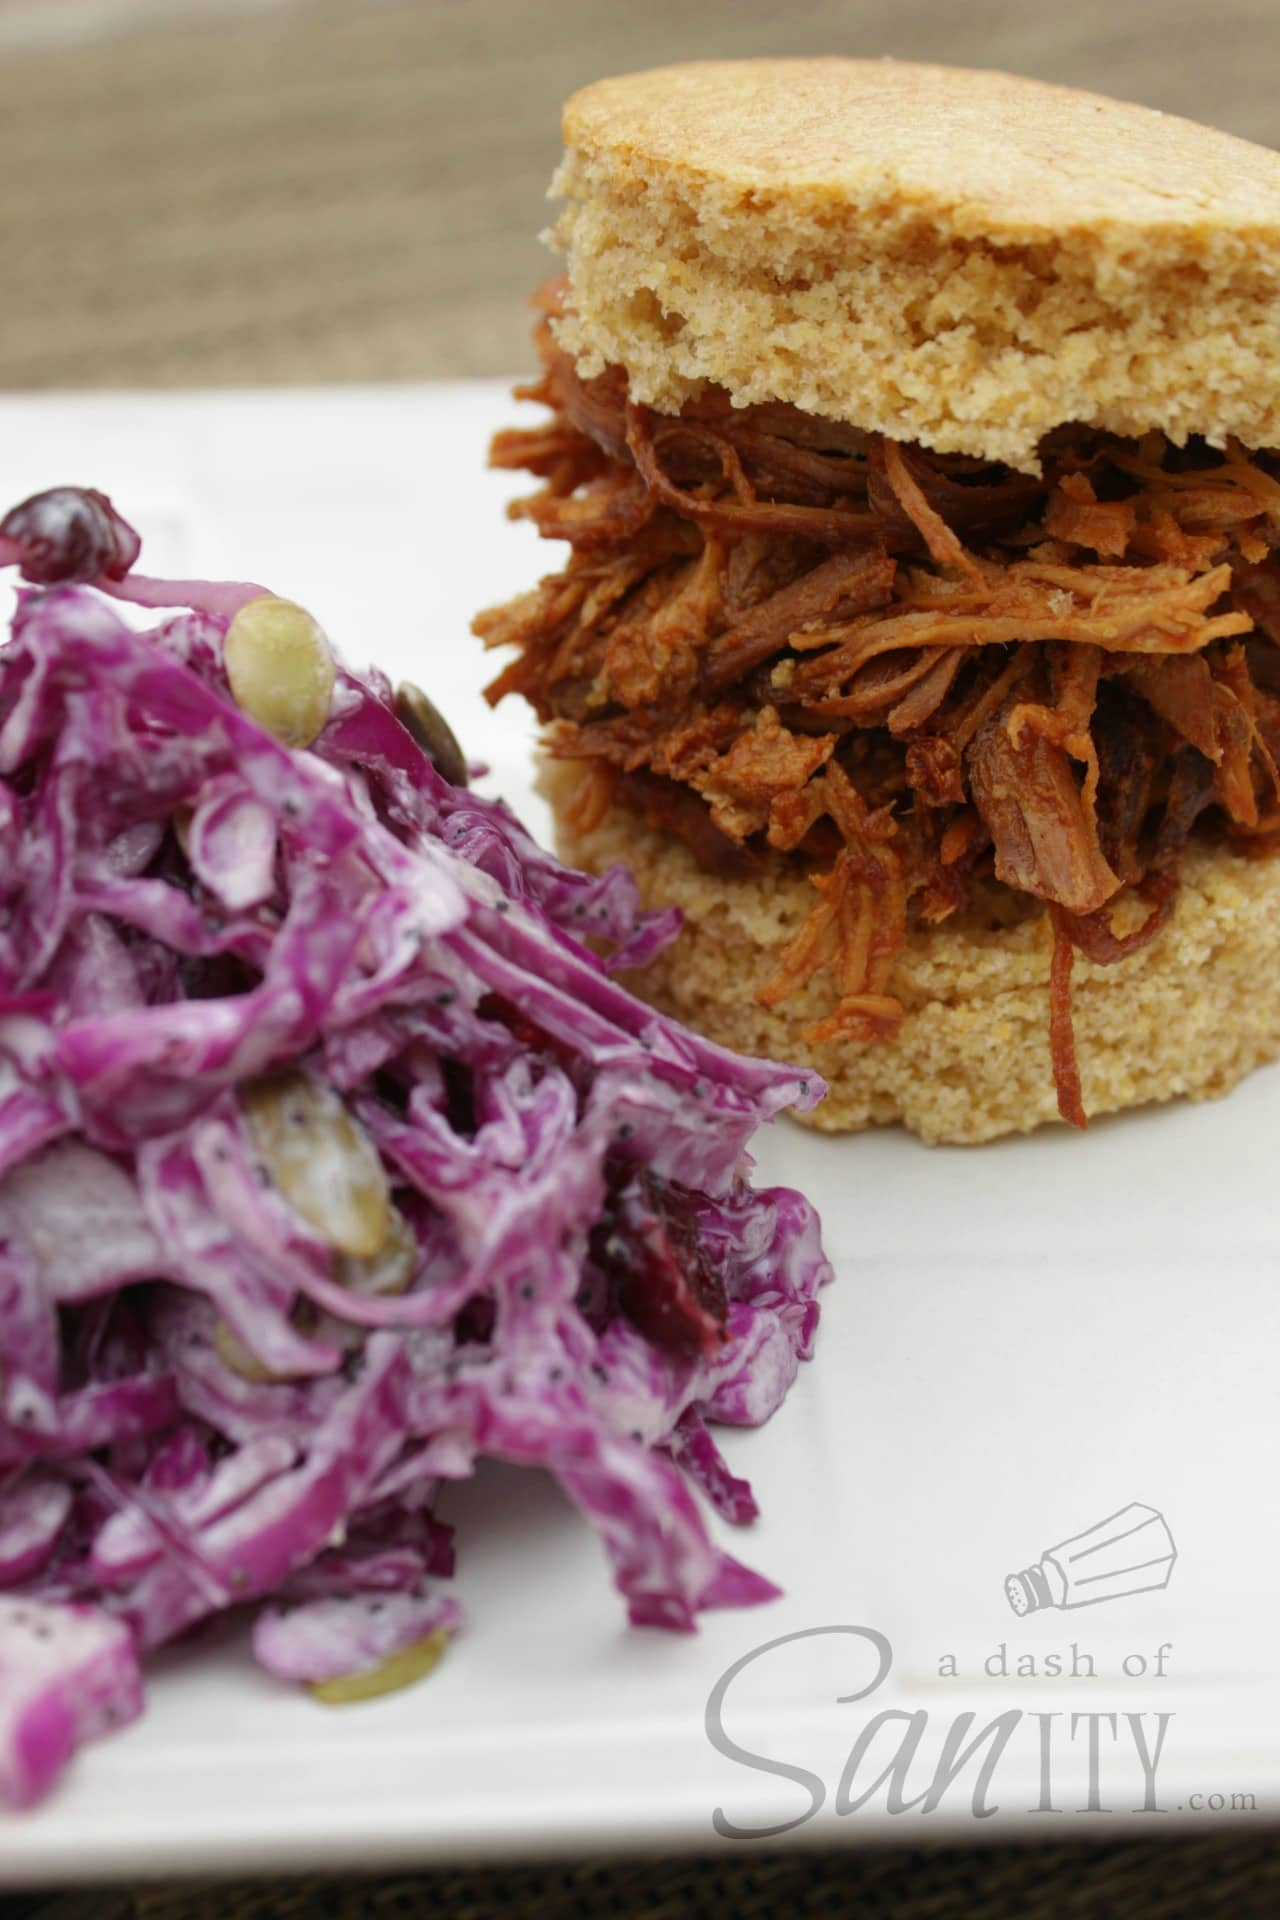 Barbeque Chicken served on sliced cornbread bun on a plate with a serving of Healthy Cole Slaw